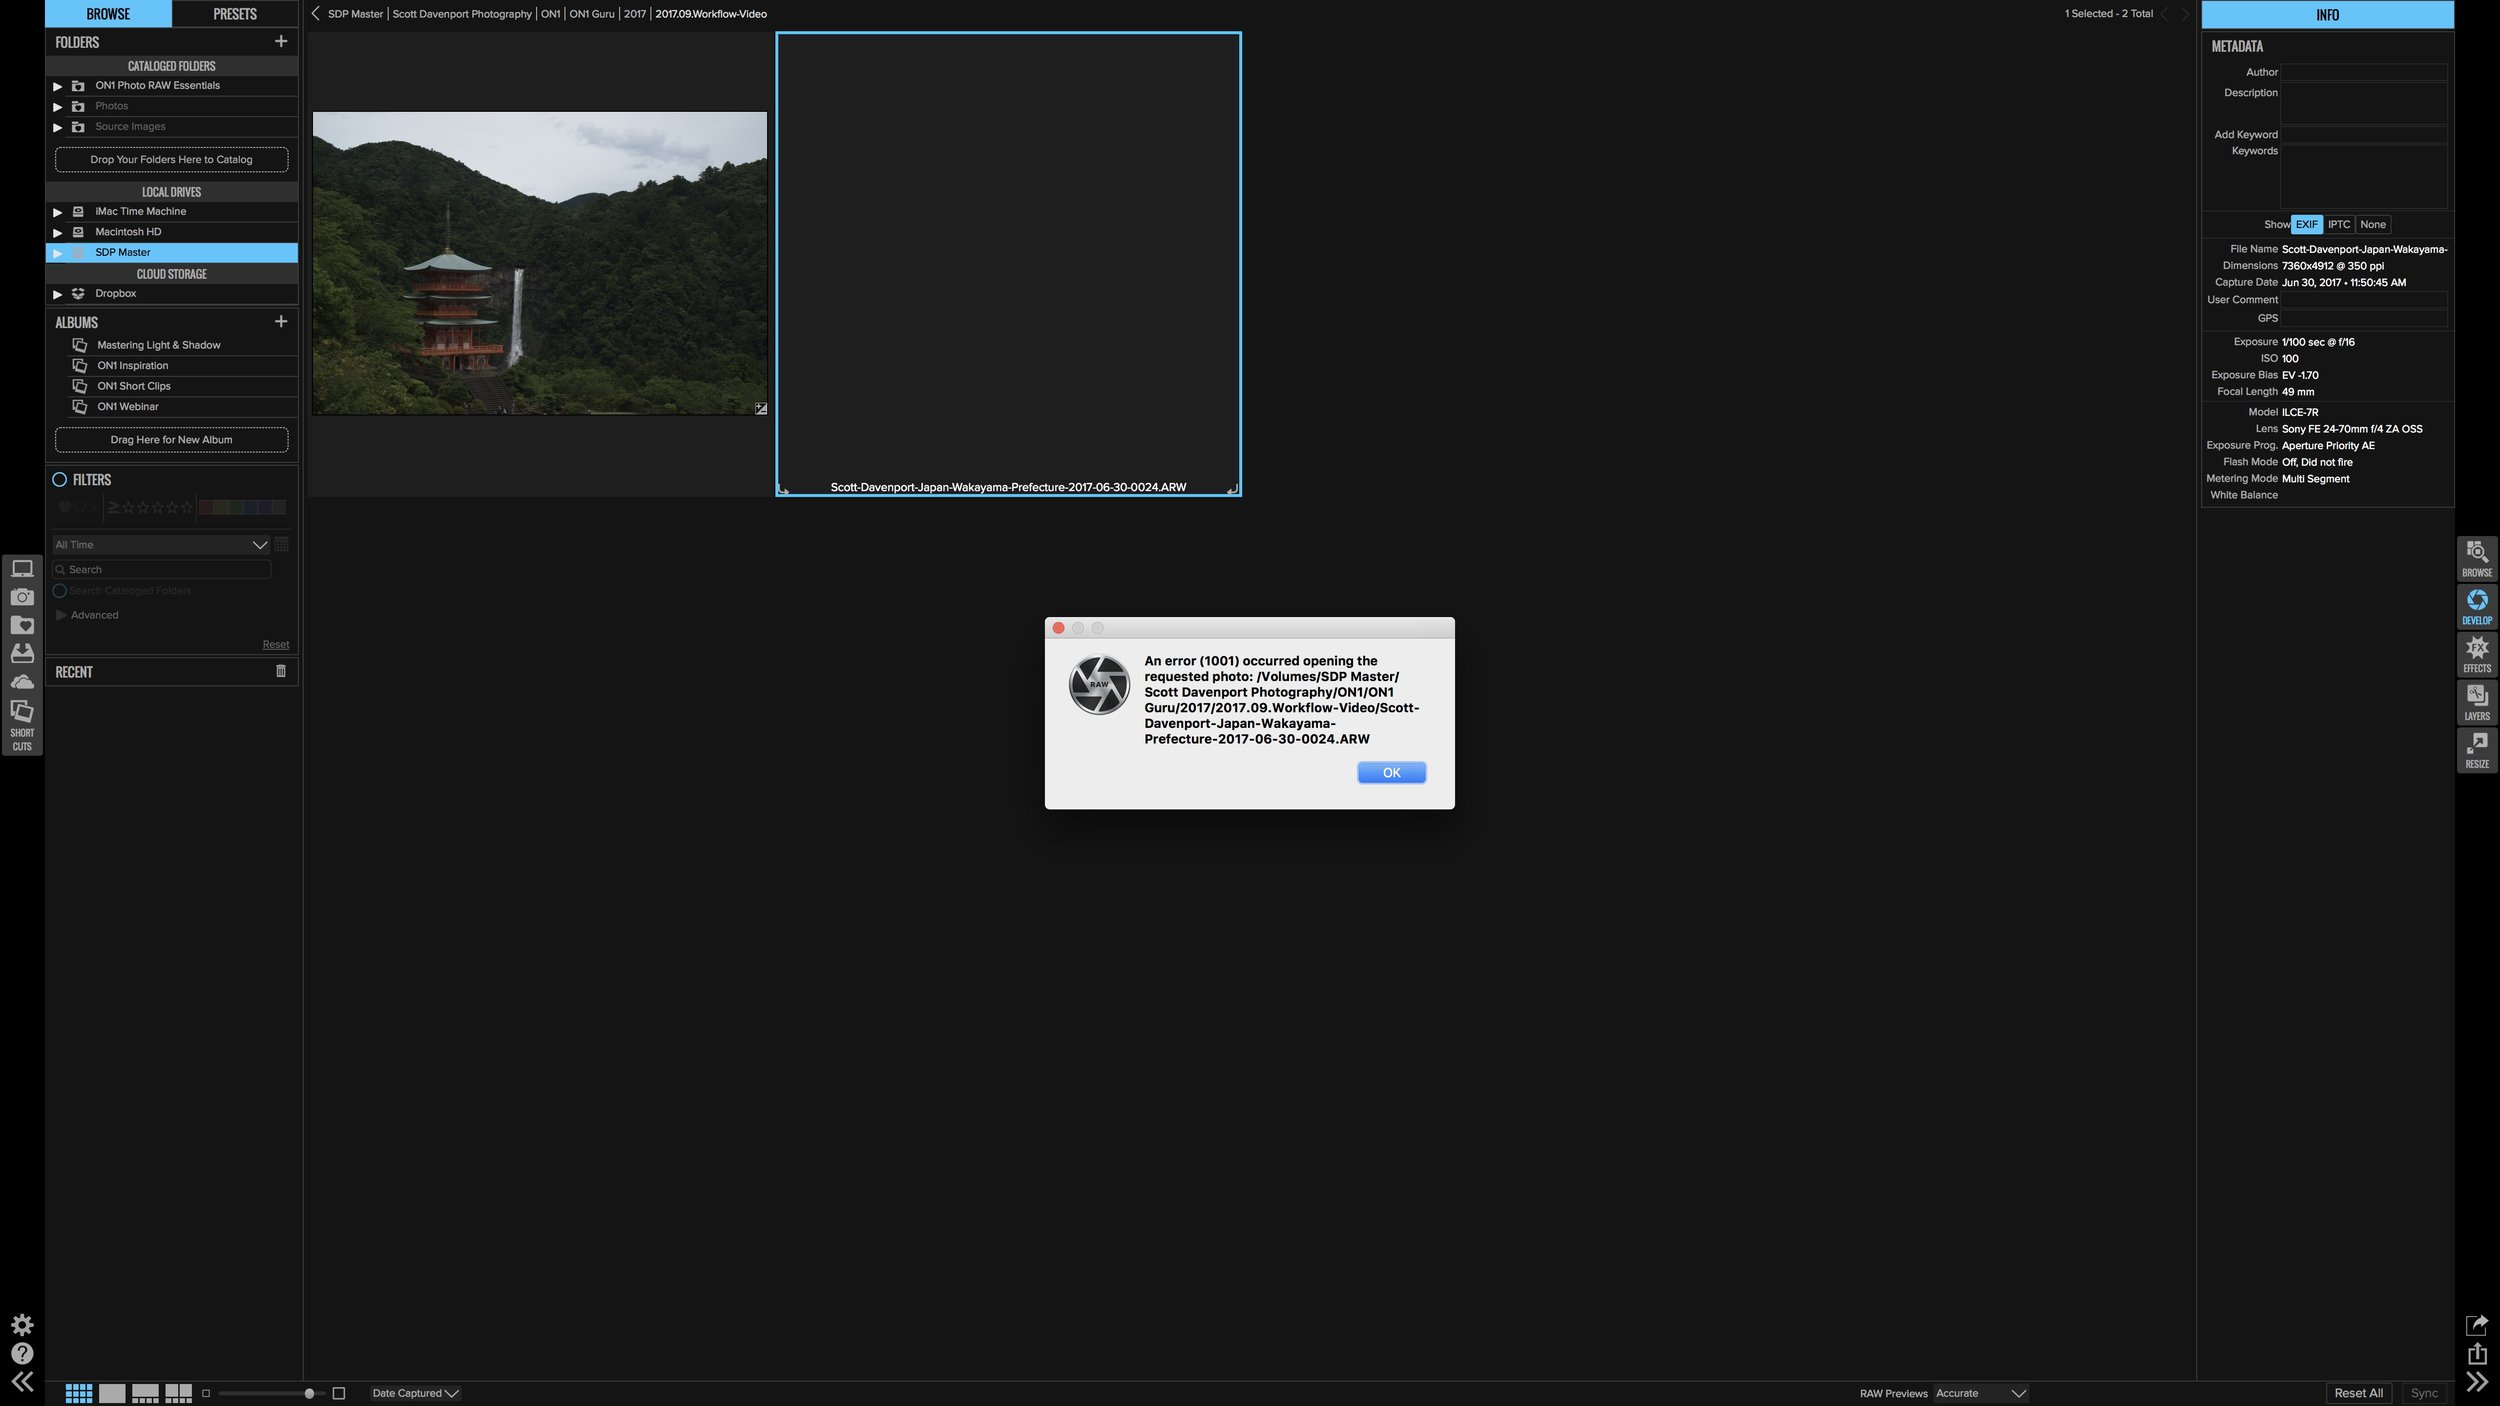 A black thumbnail would not open in Develop or Effects